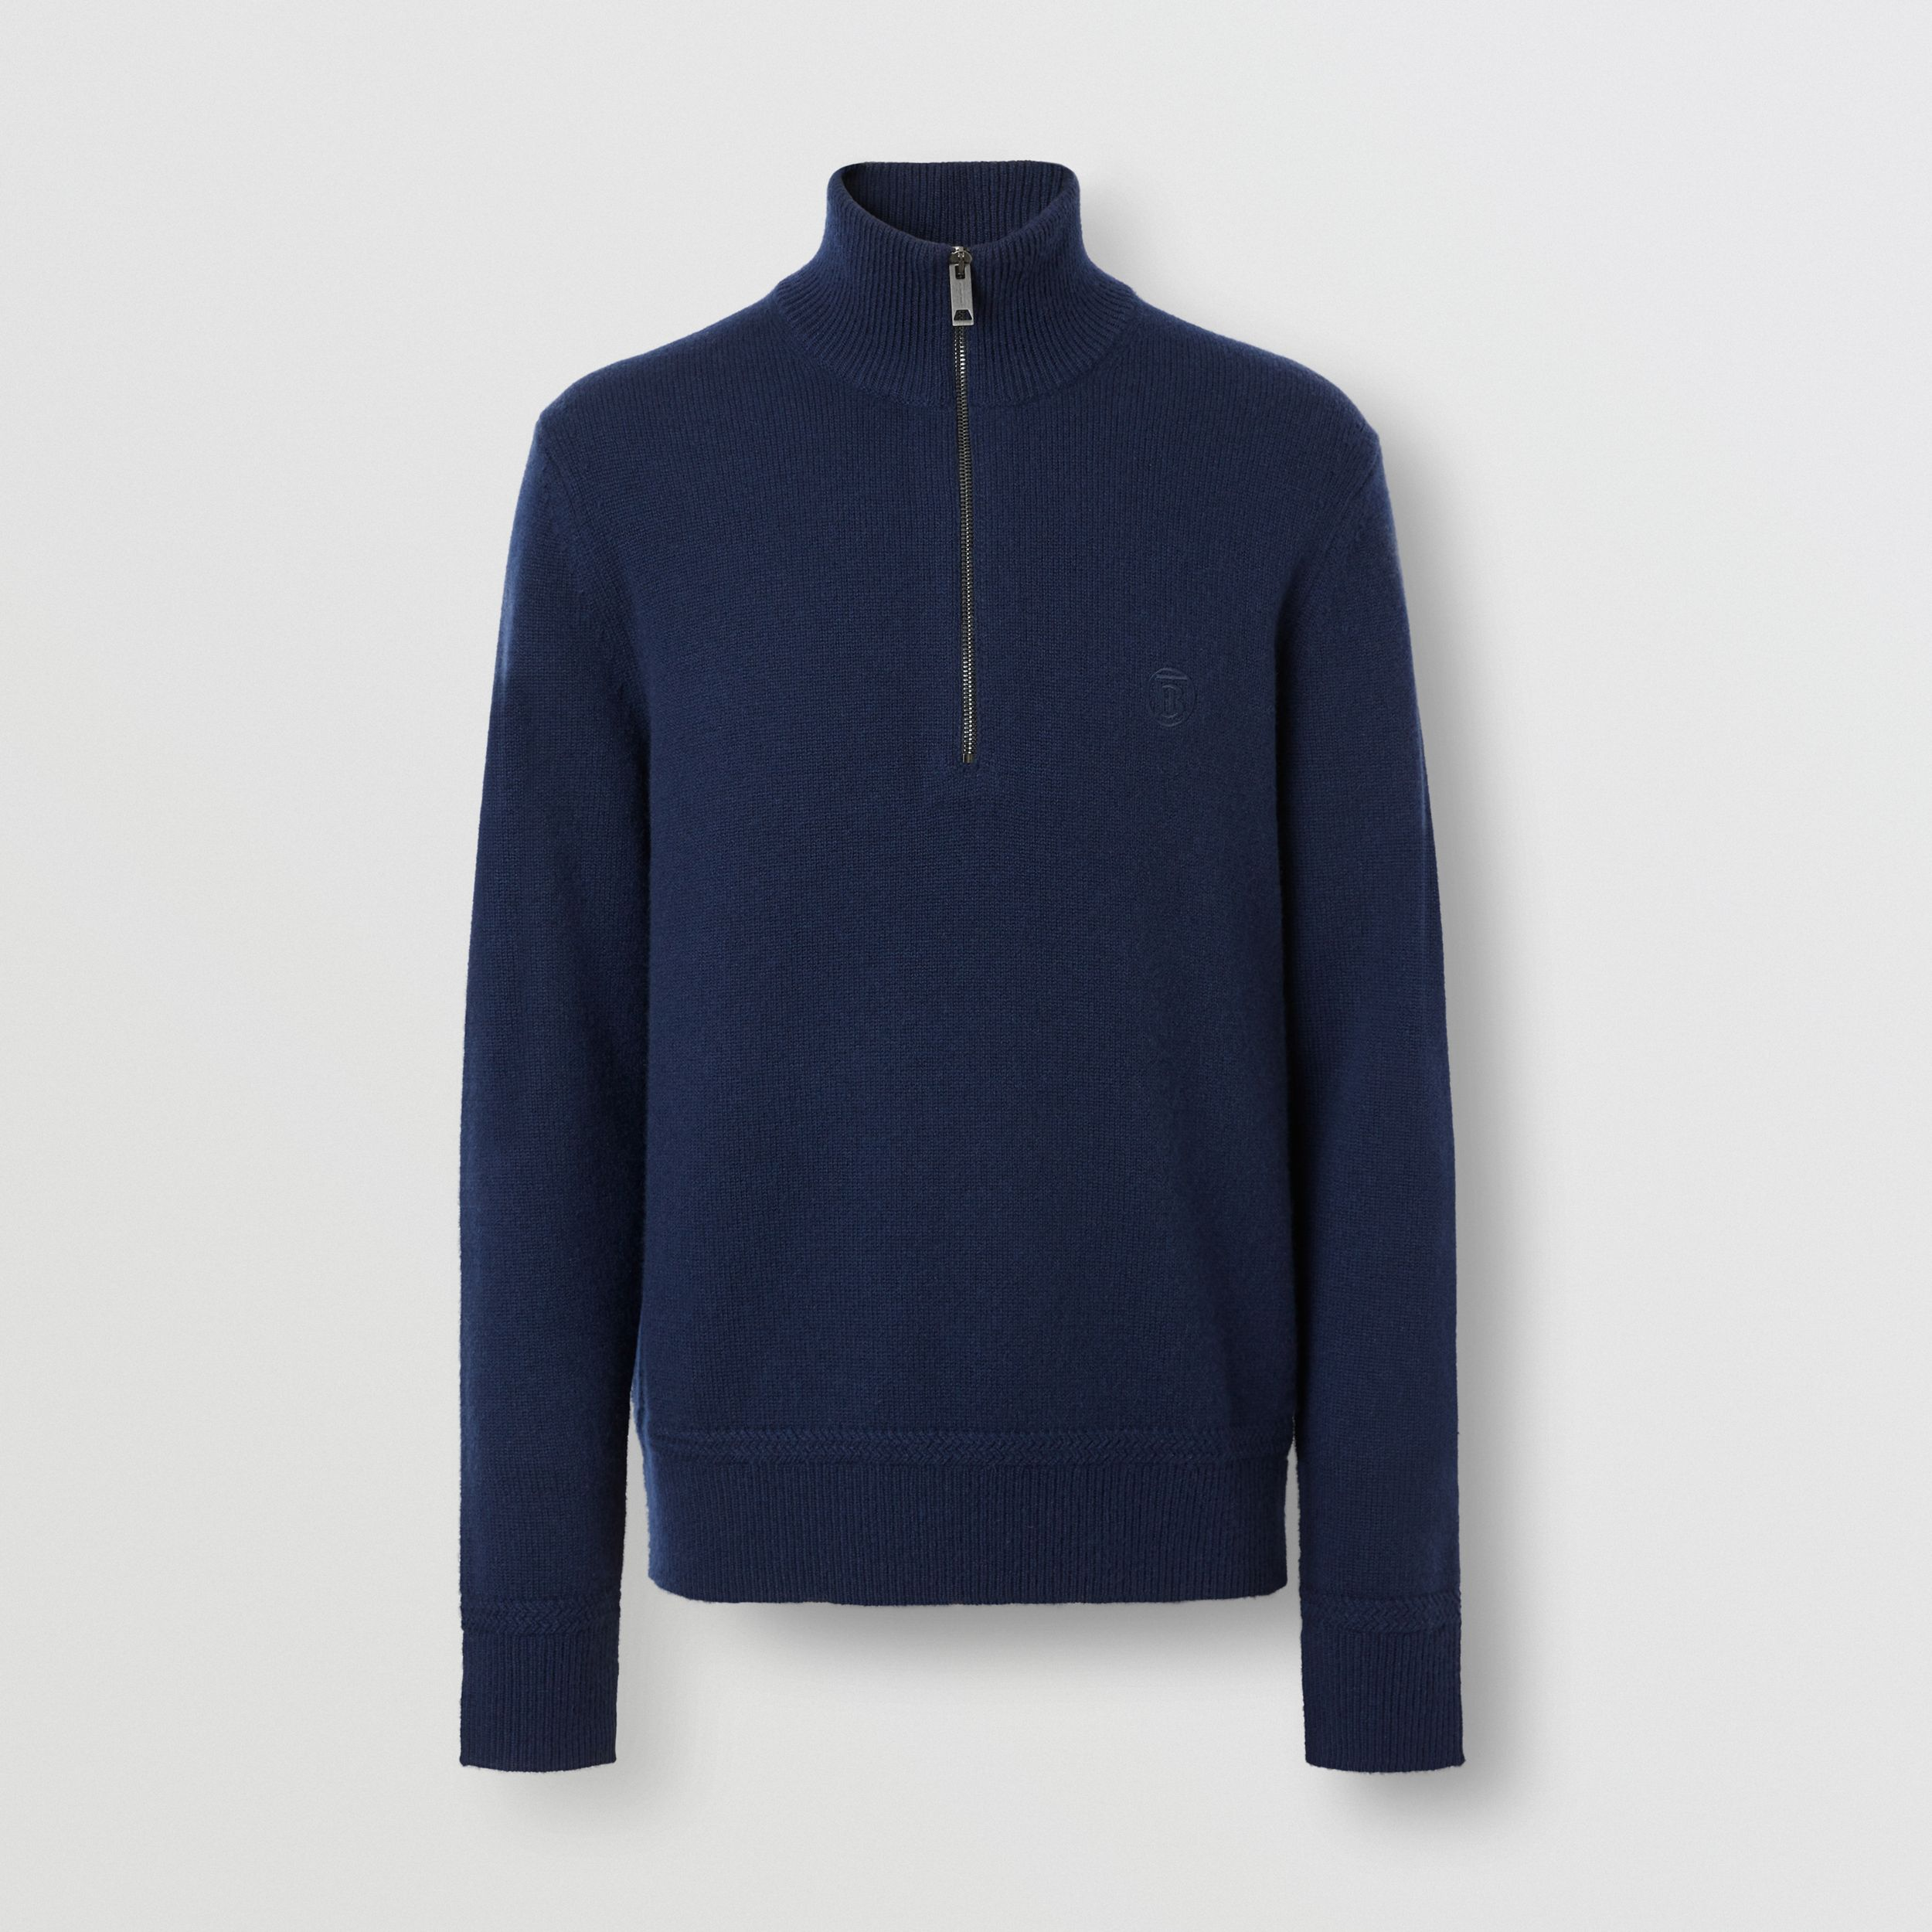 Monogram Motif Cashmere Funnel Neck Sweater in Navy - Men | Burberry United Kingdom - 4